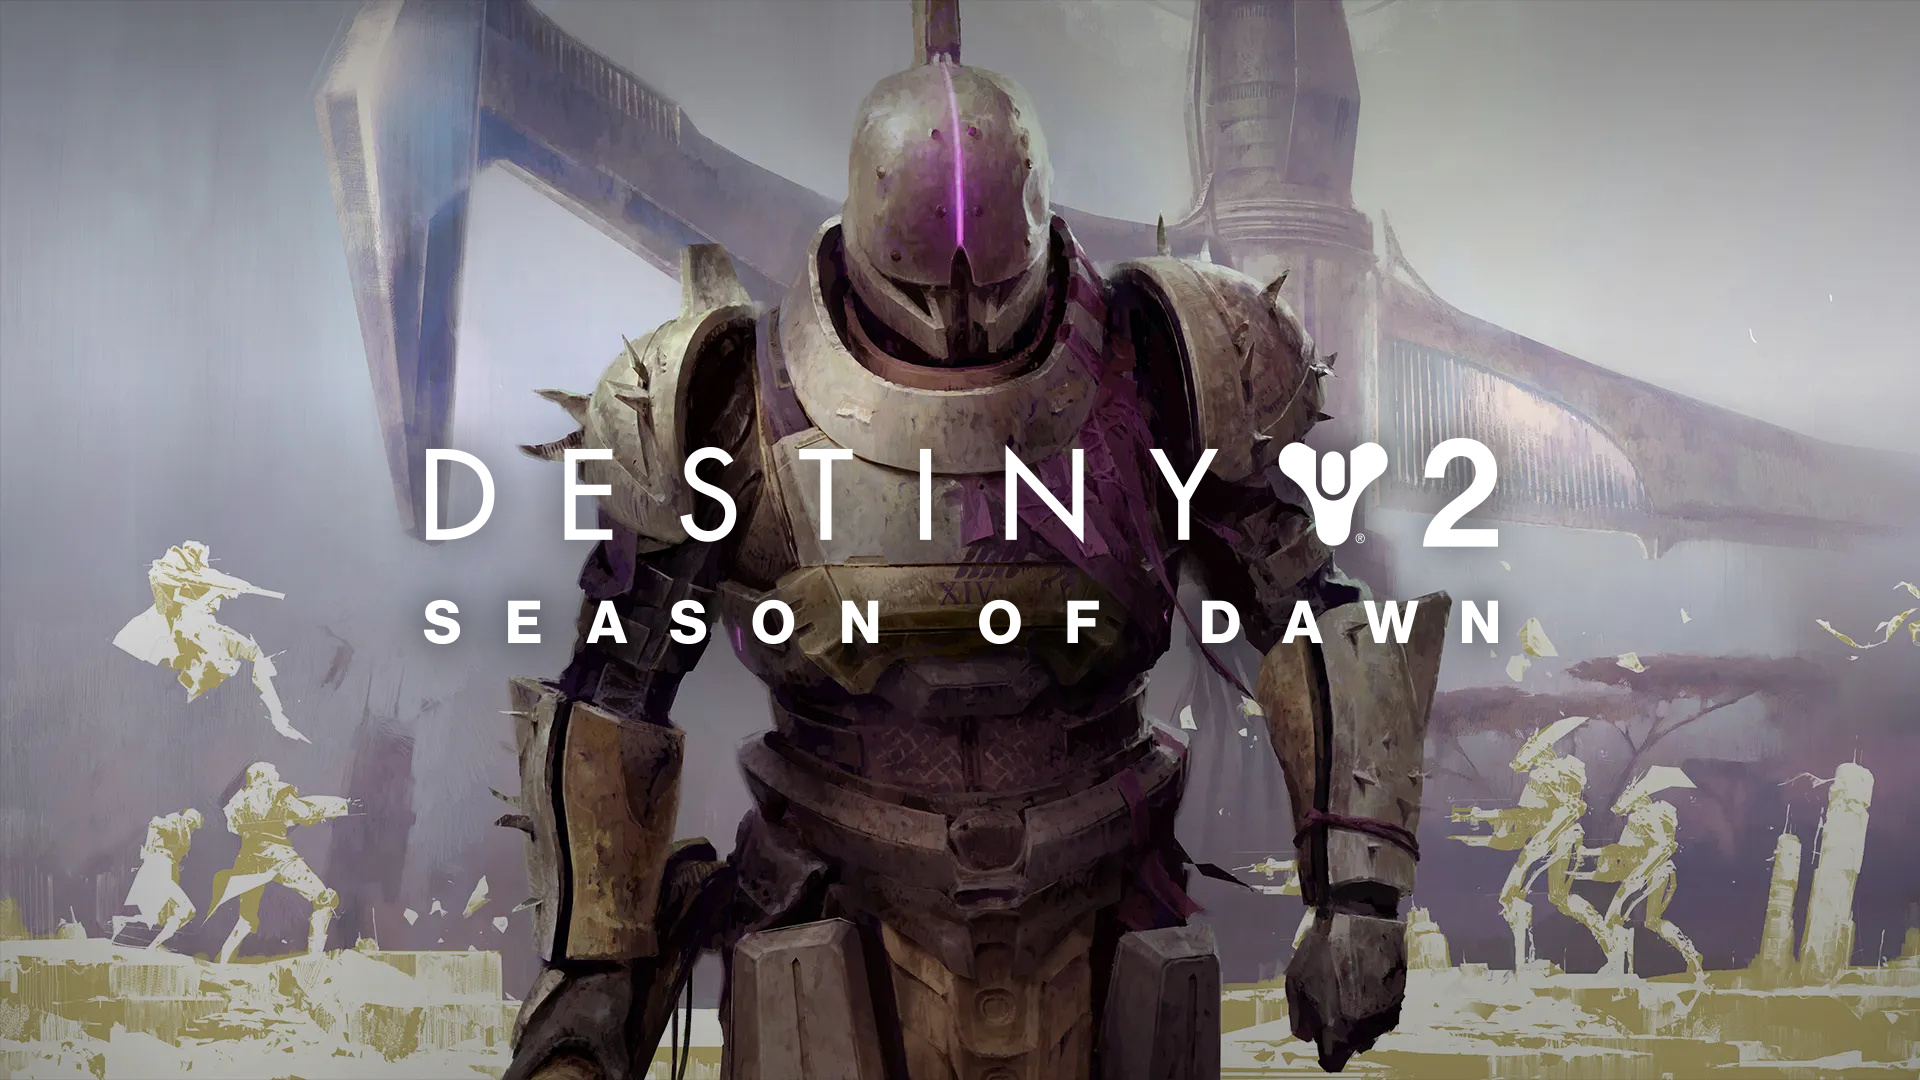 Watch The Destiny 2 Season of Dawn Trailer